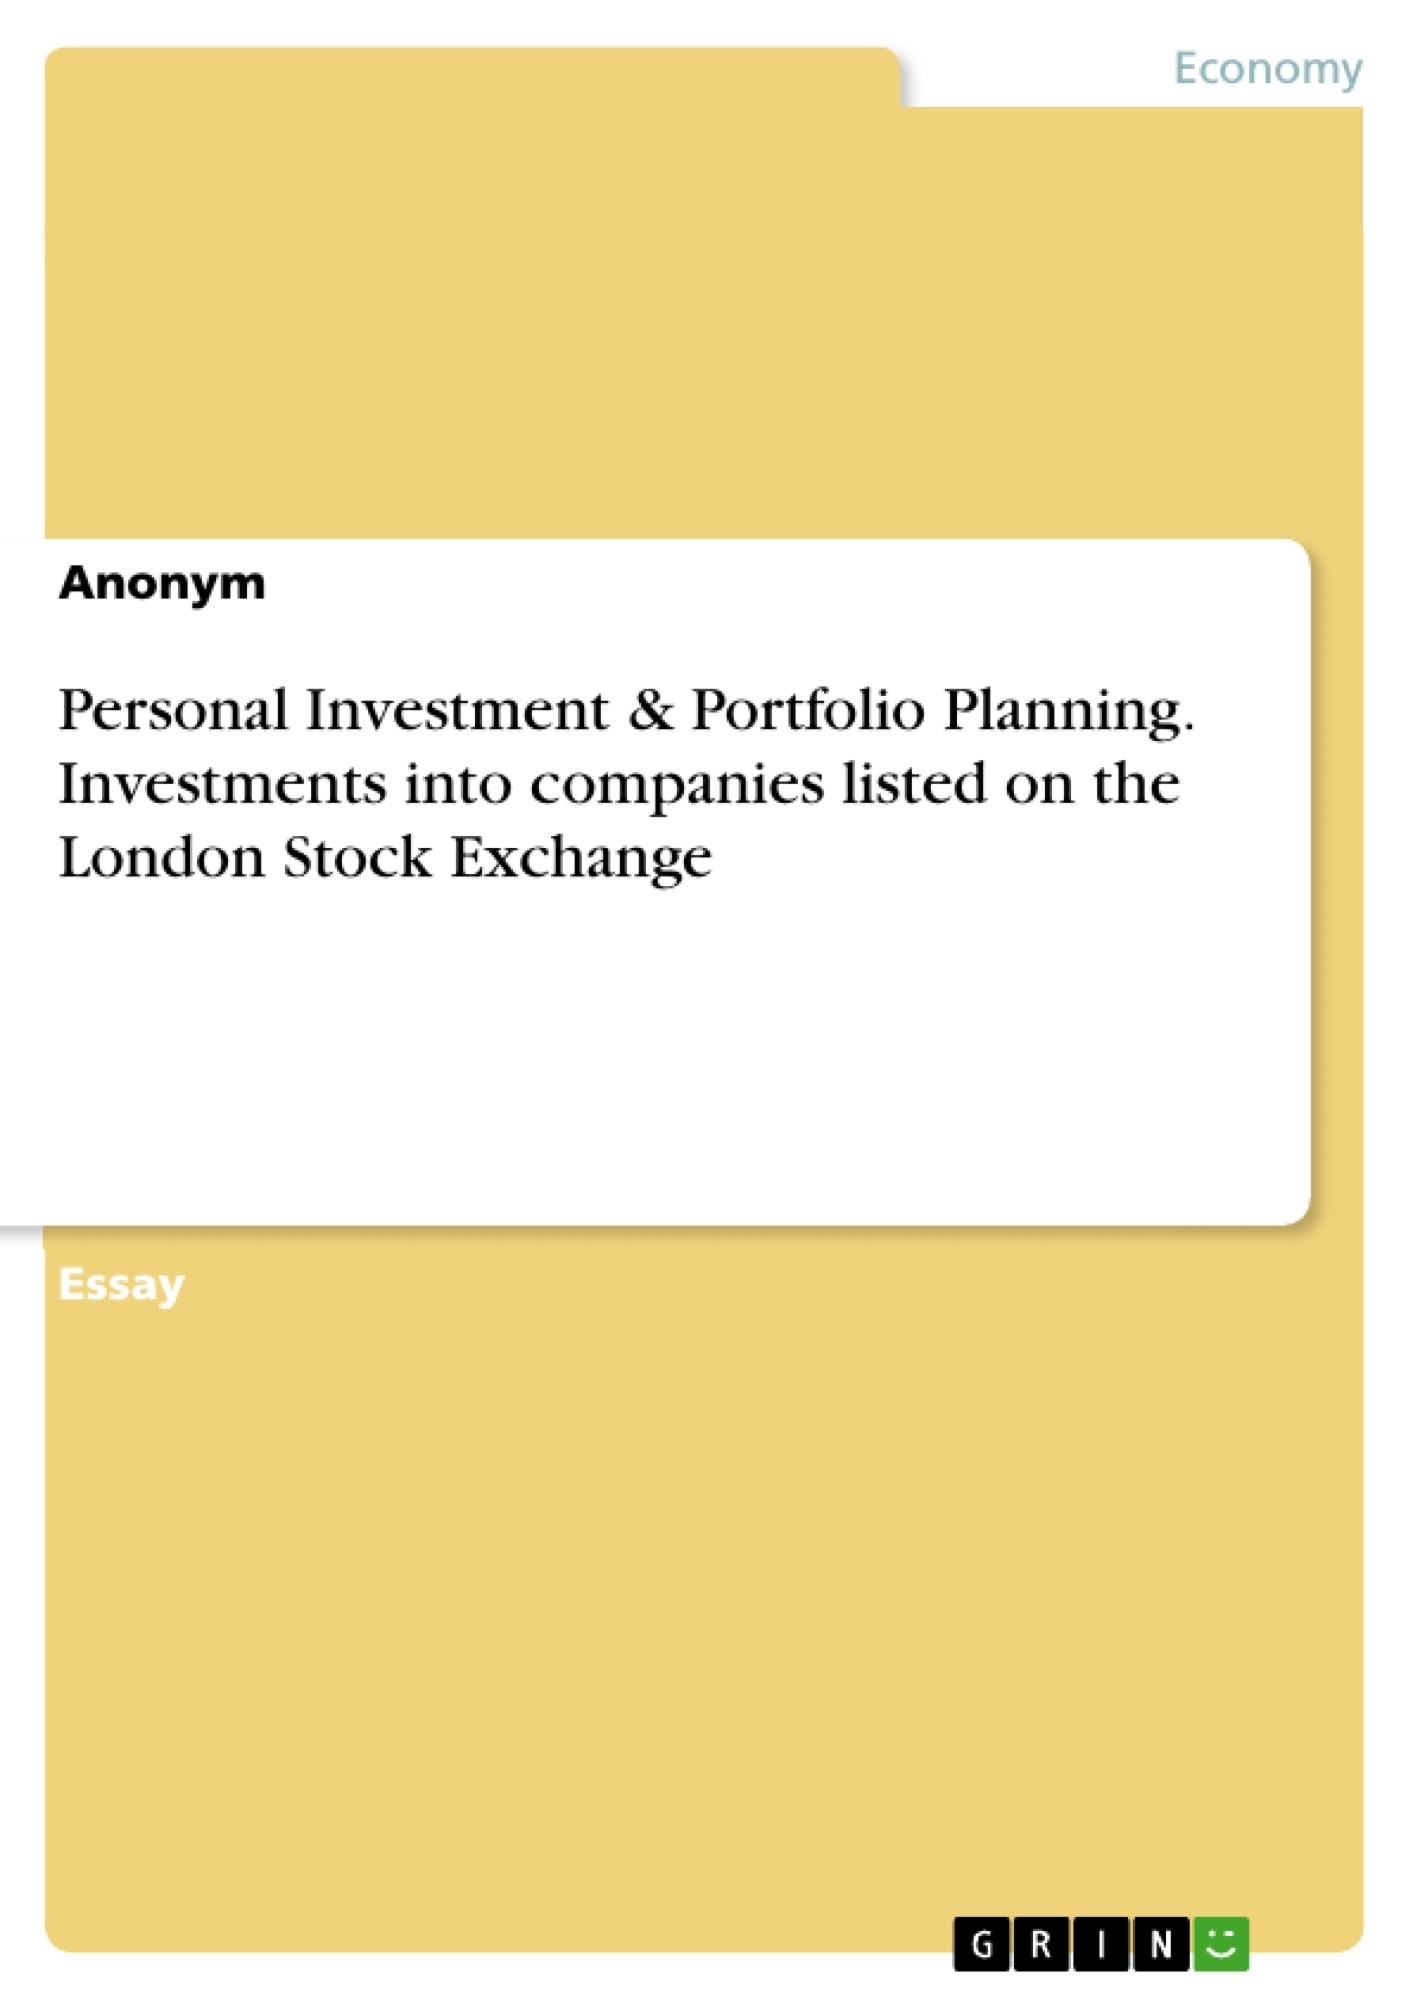 Title: Personal Investment & Portfolio Planning. Investments into companies listed on the London Stock Exchange